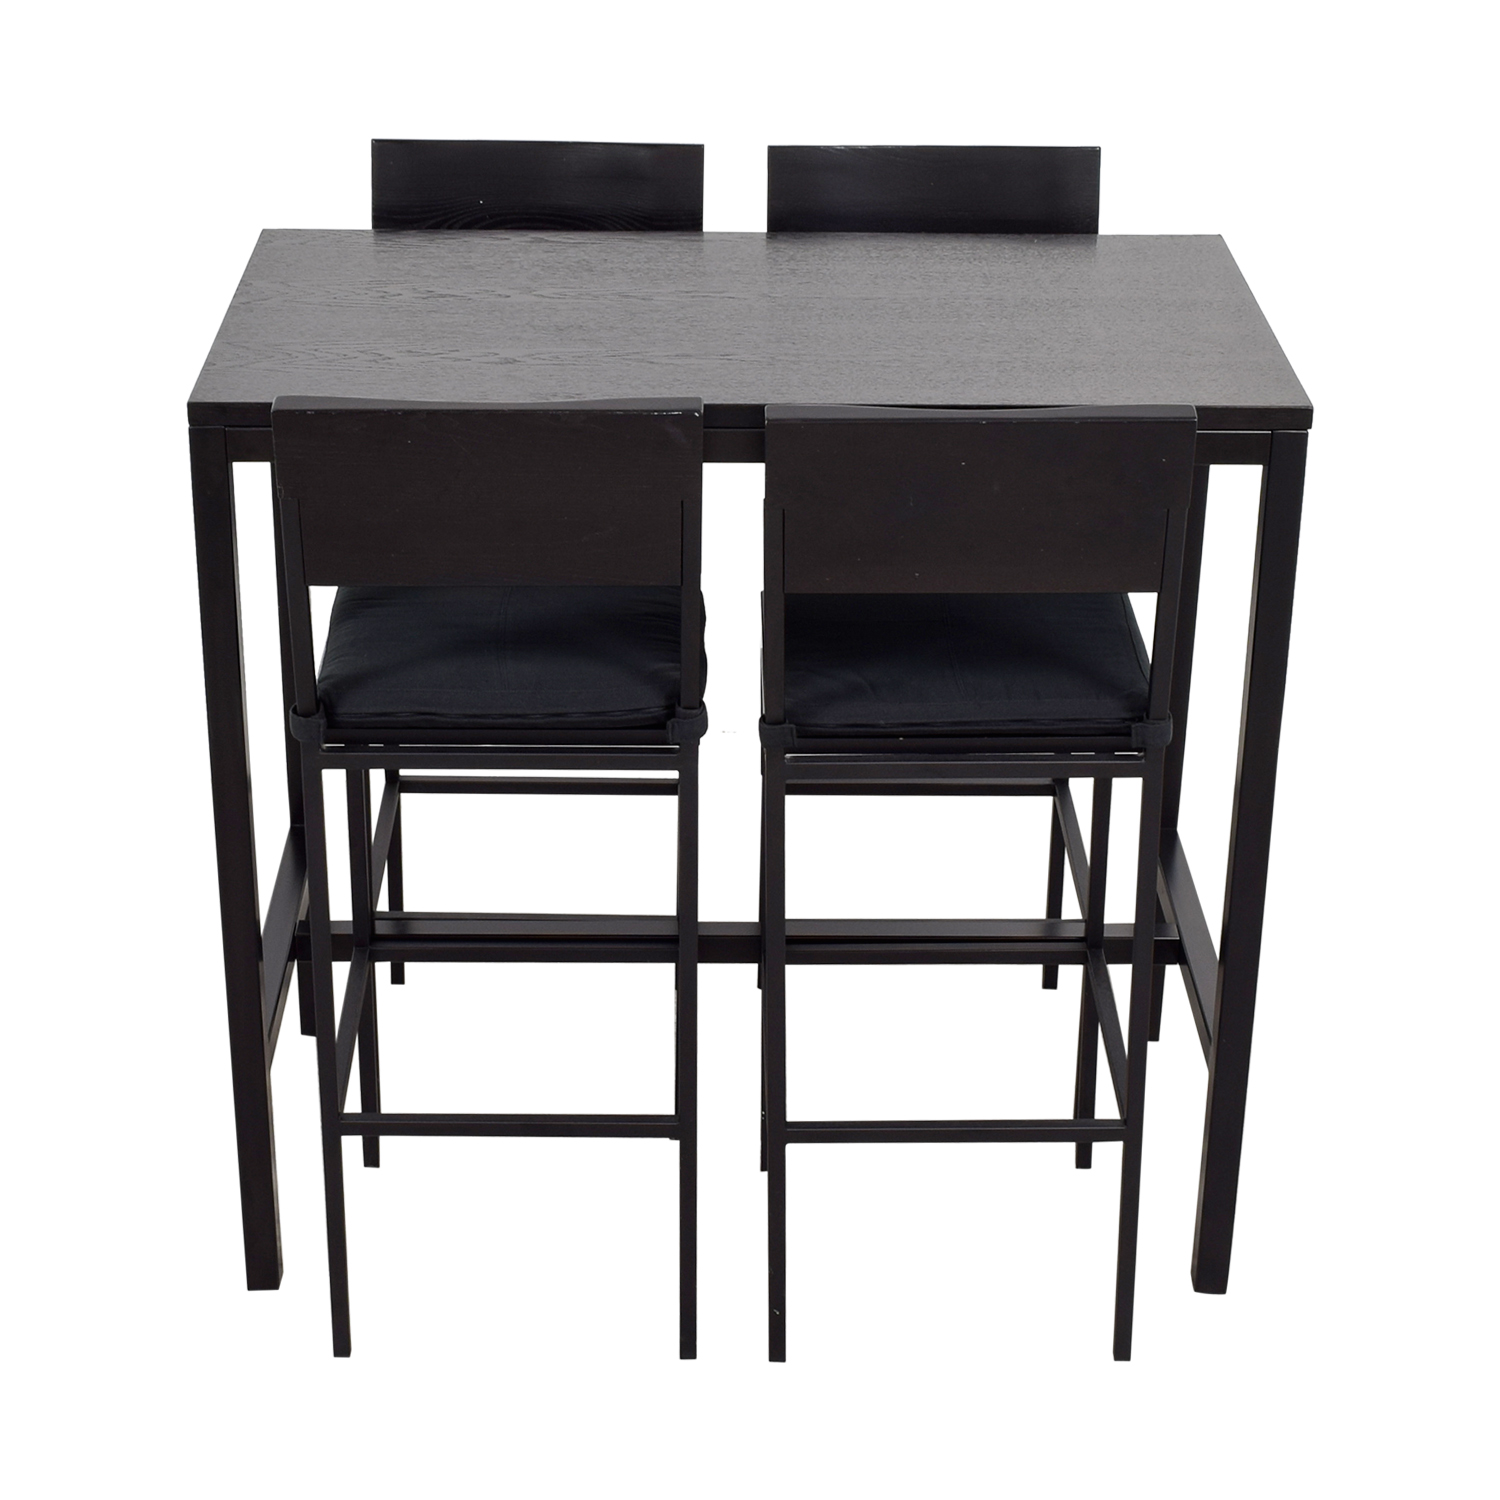 Crate & Barrel Black Tall Kitchen Dining Set sale